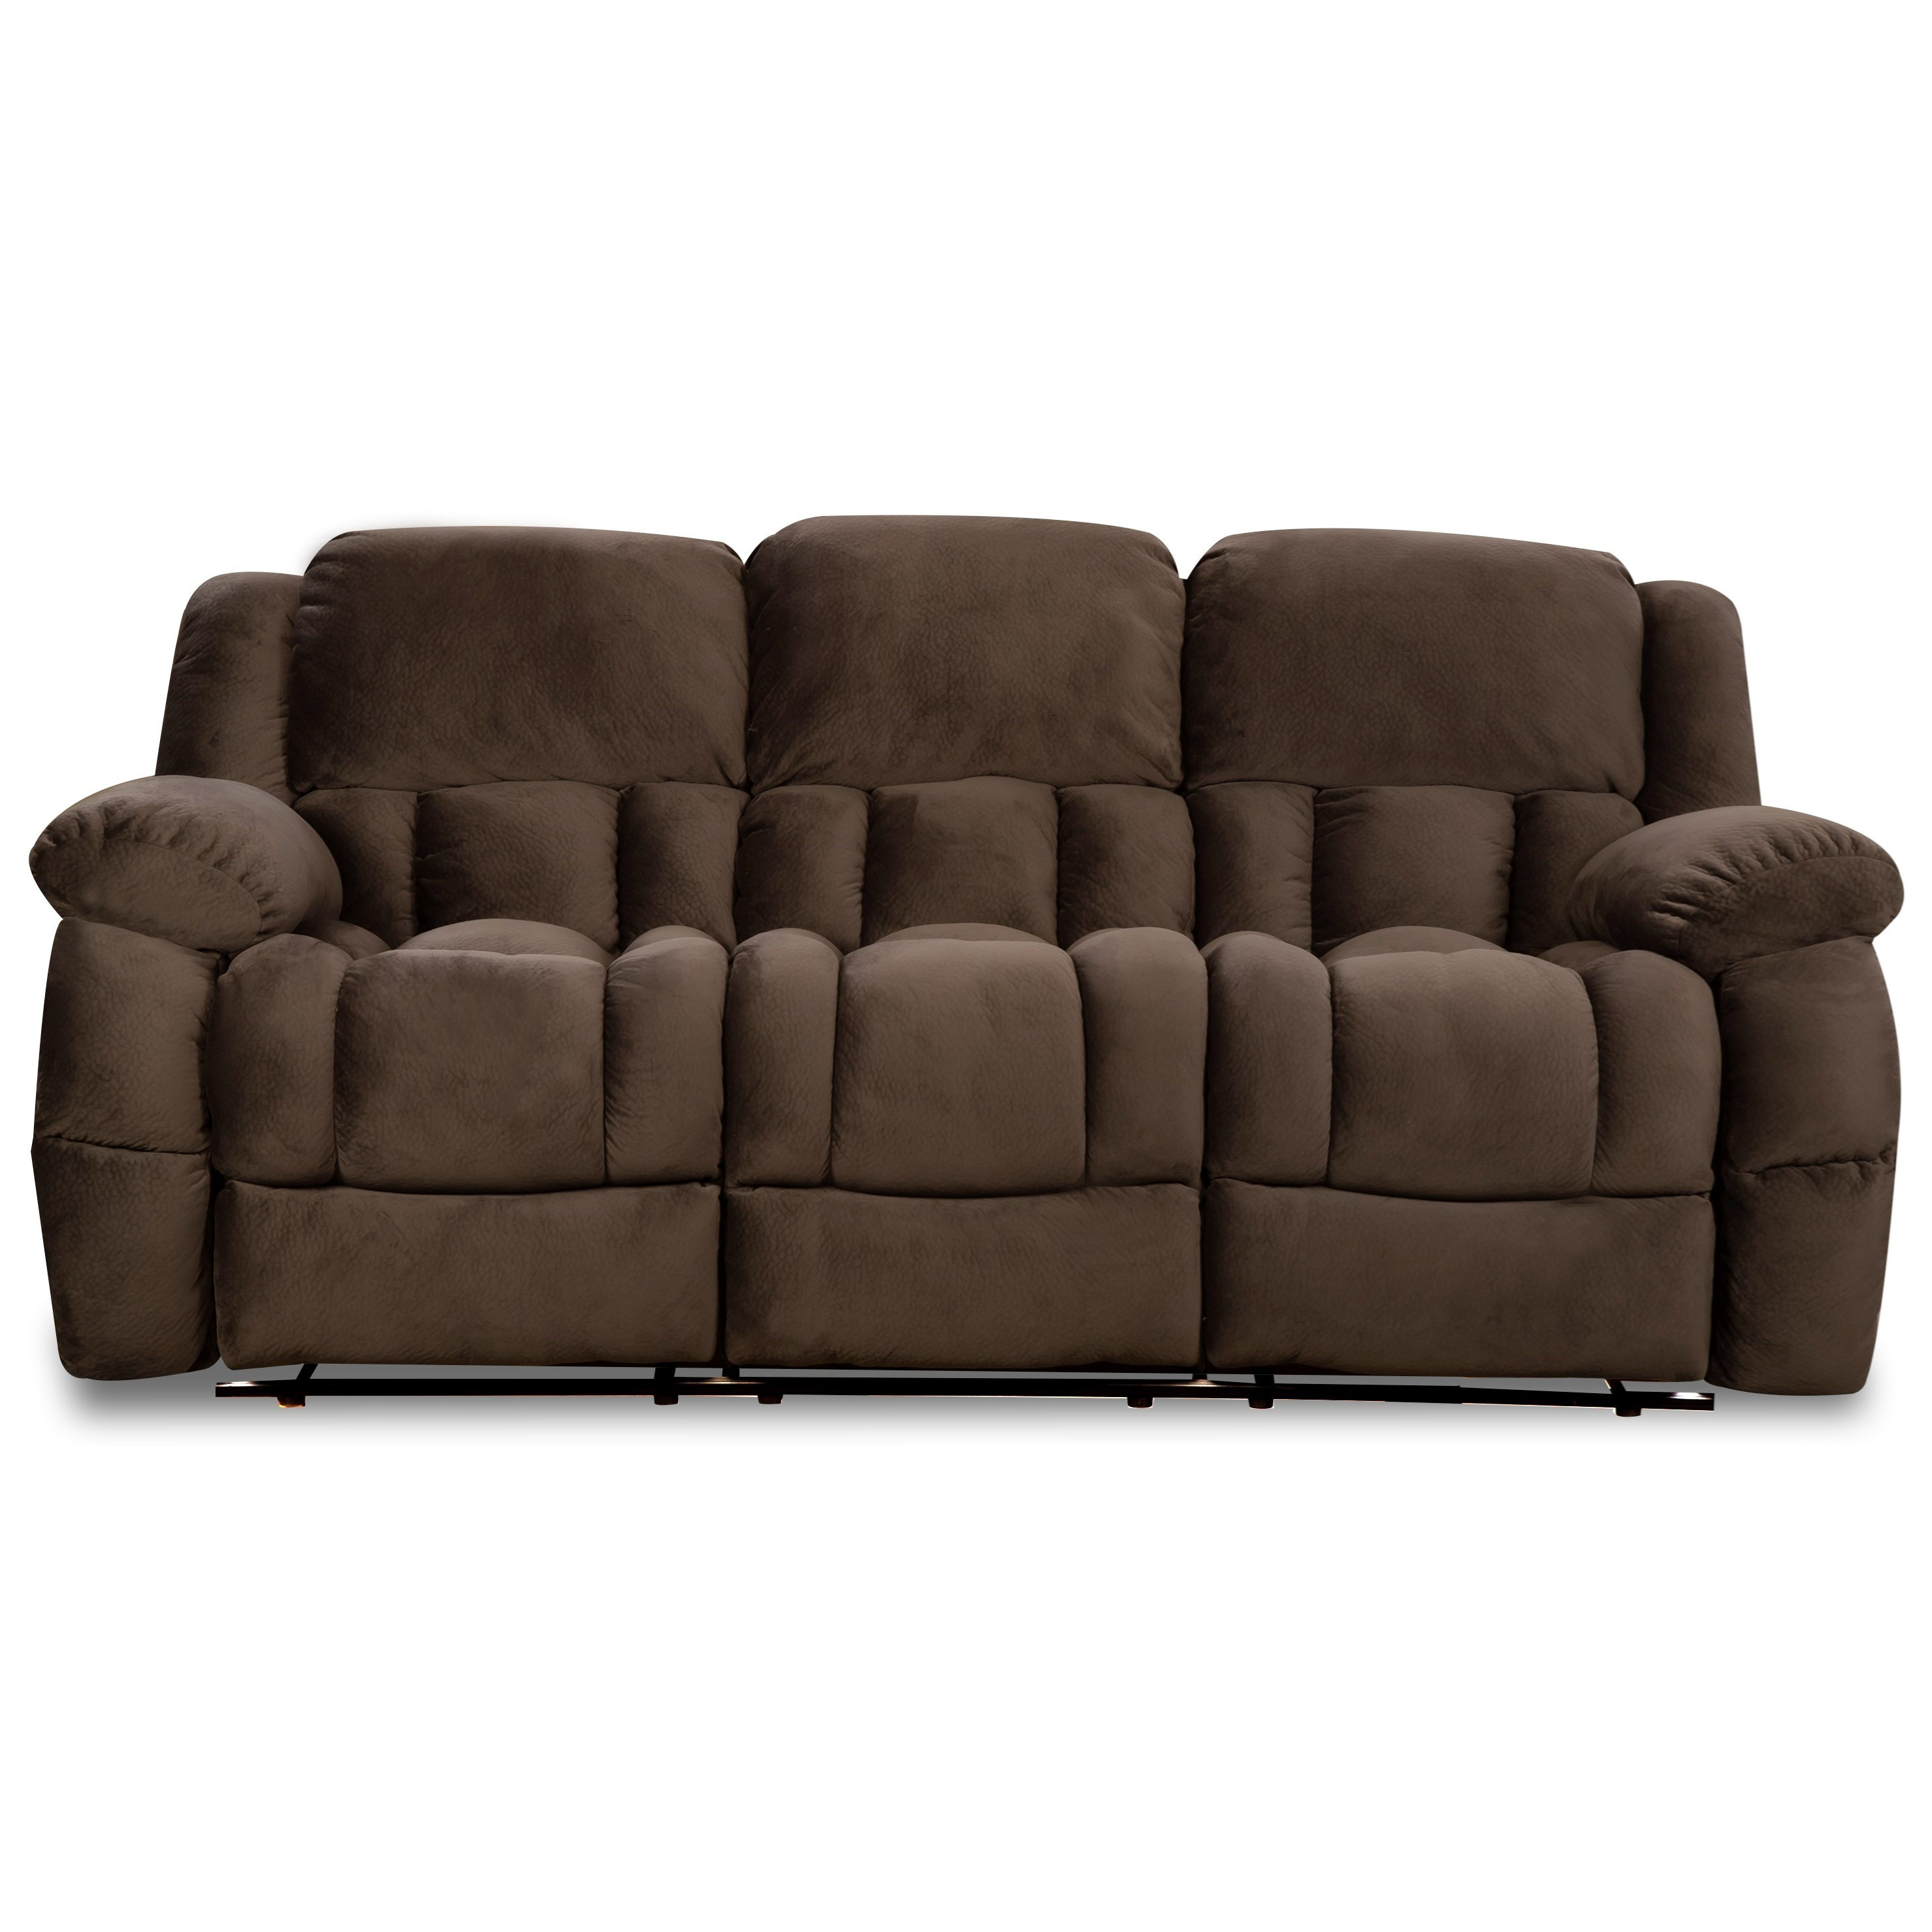 29901 Reclining Sofa by Corinthian at Story & Lee Furniture